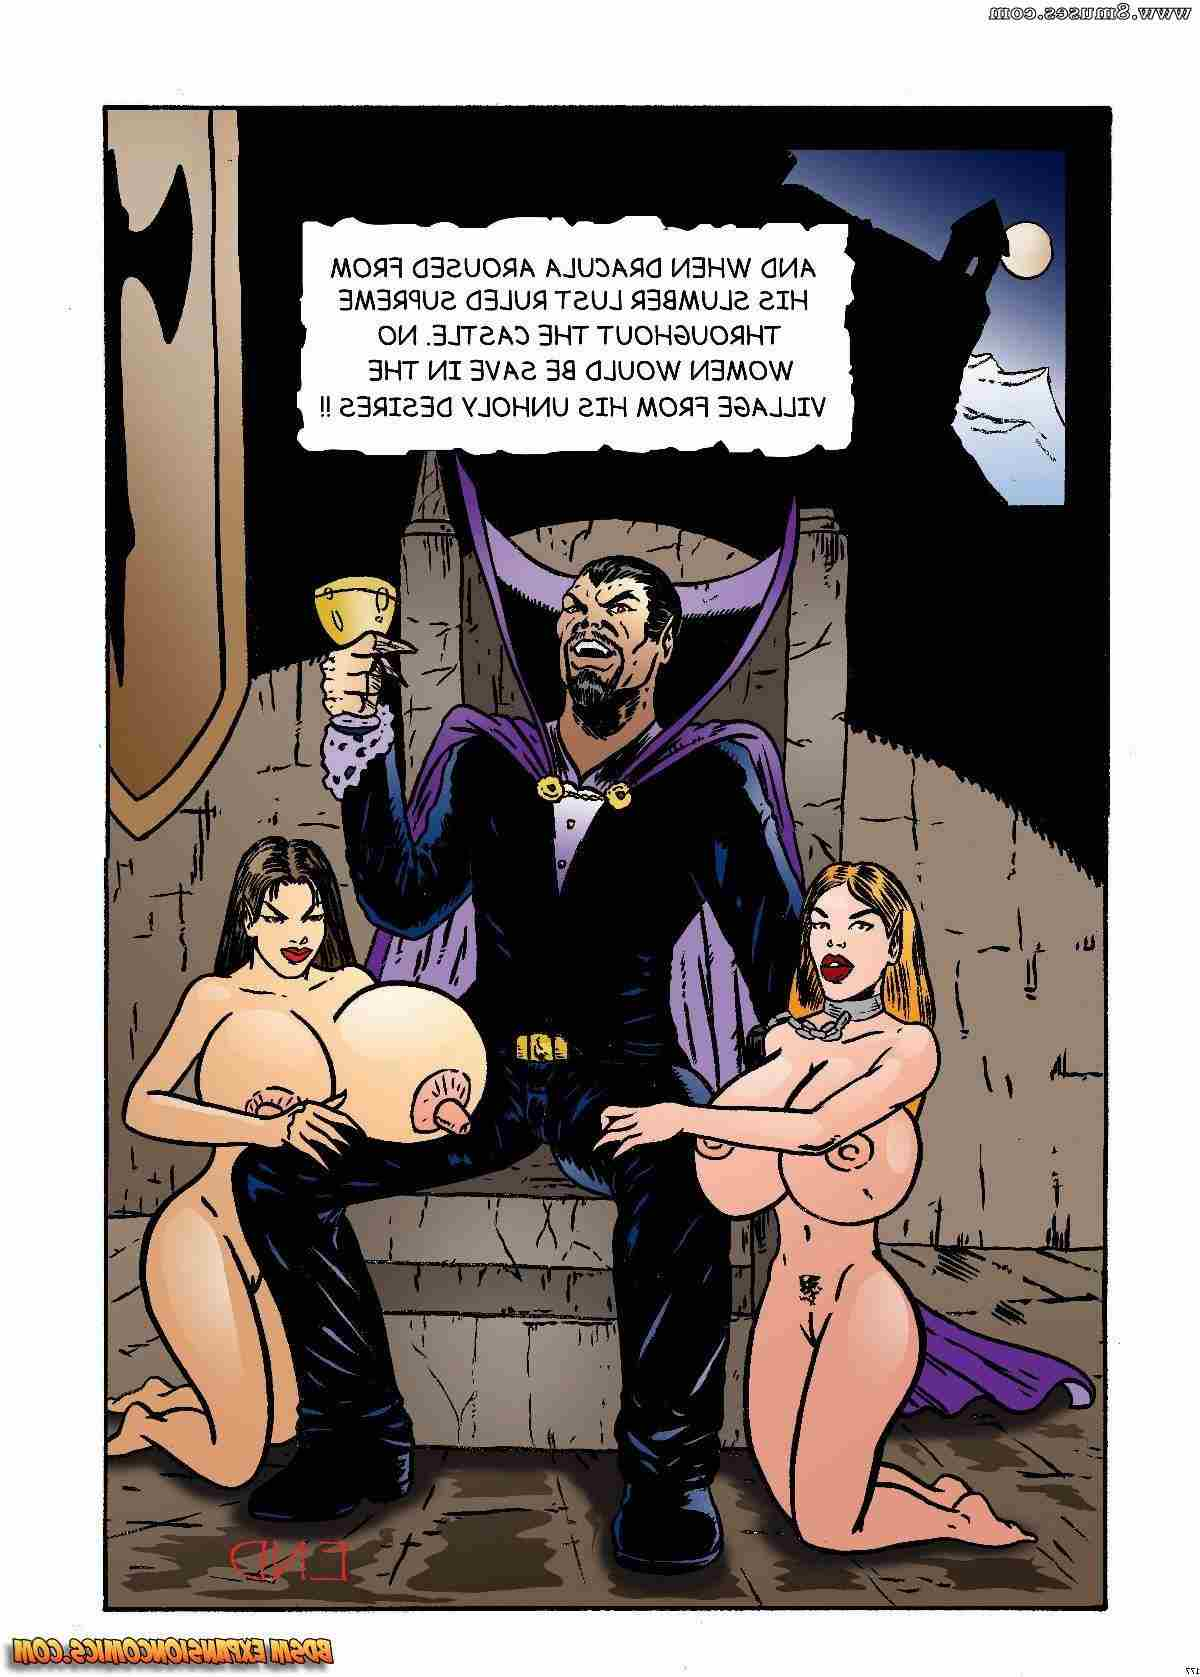 Expansion-Comics/Three-Vampires Three_Vampires__8muses_-_Sex_and_Porn_Comics_18.jpg